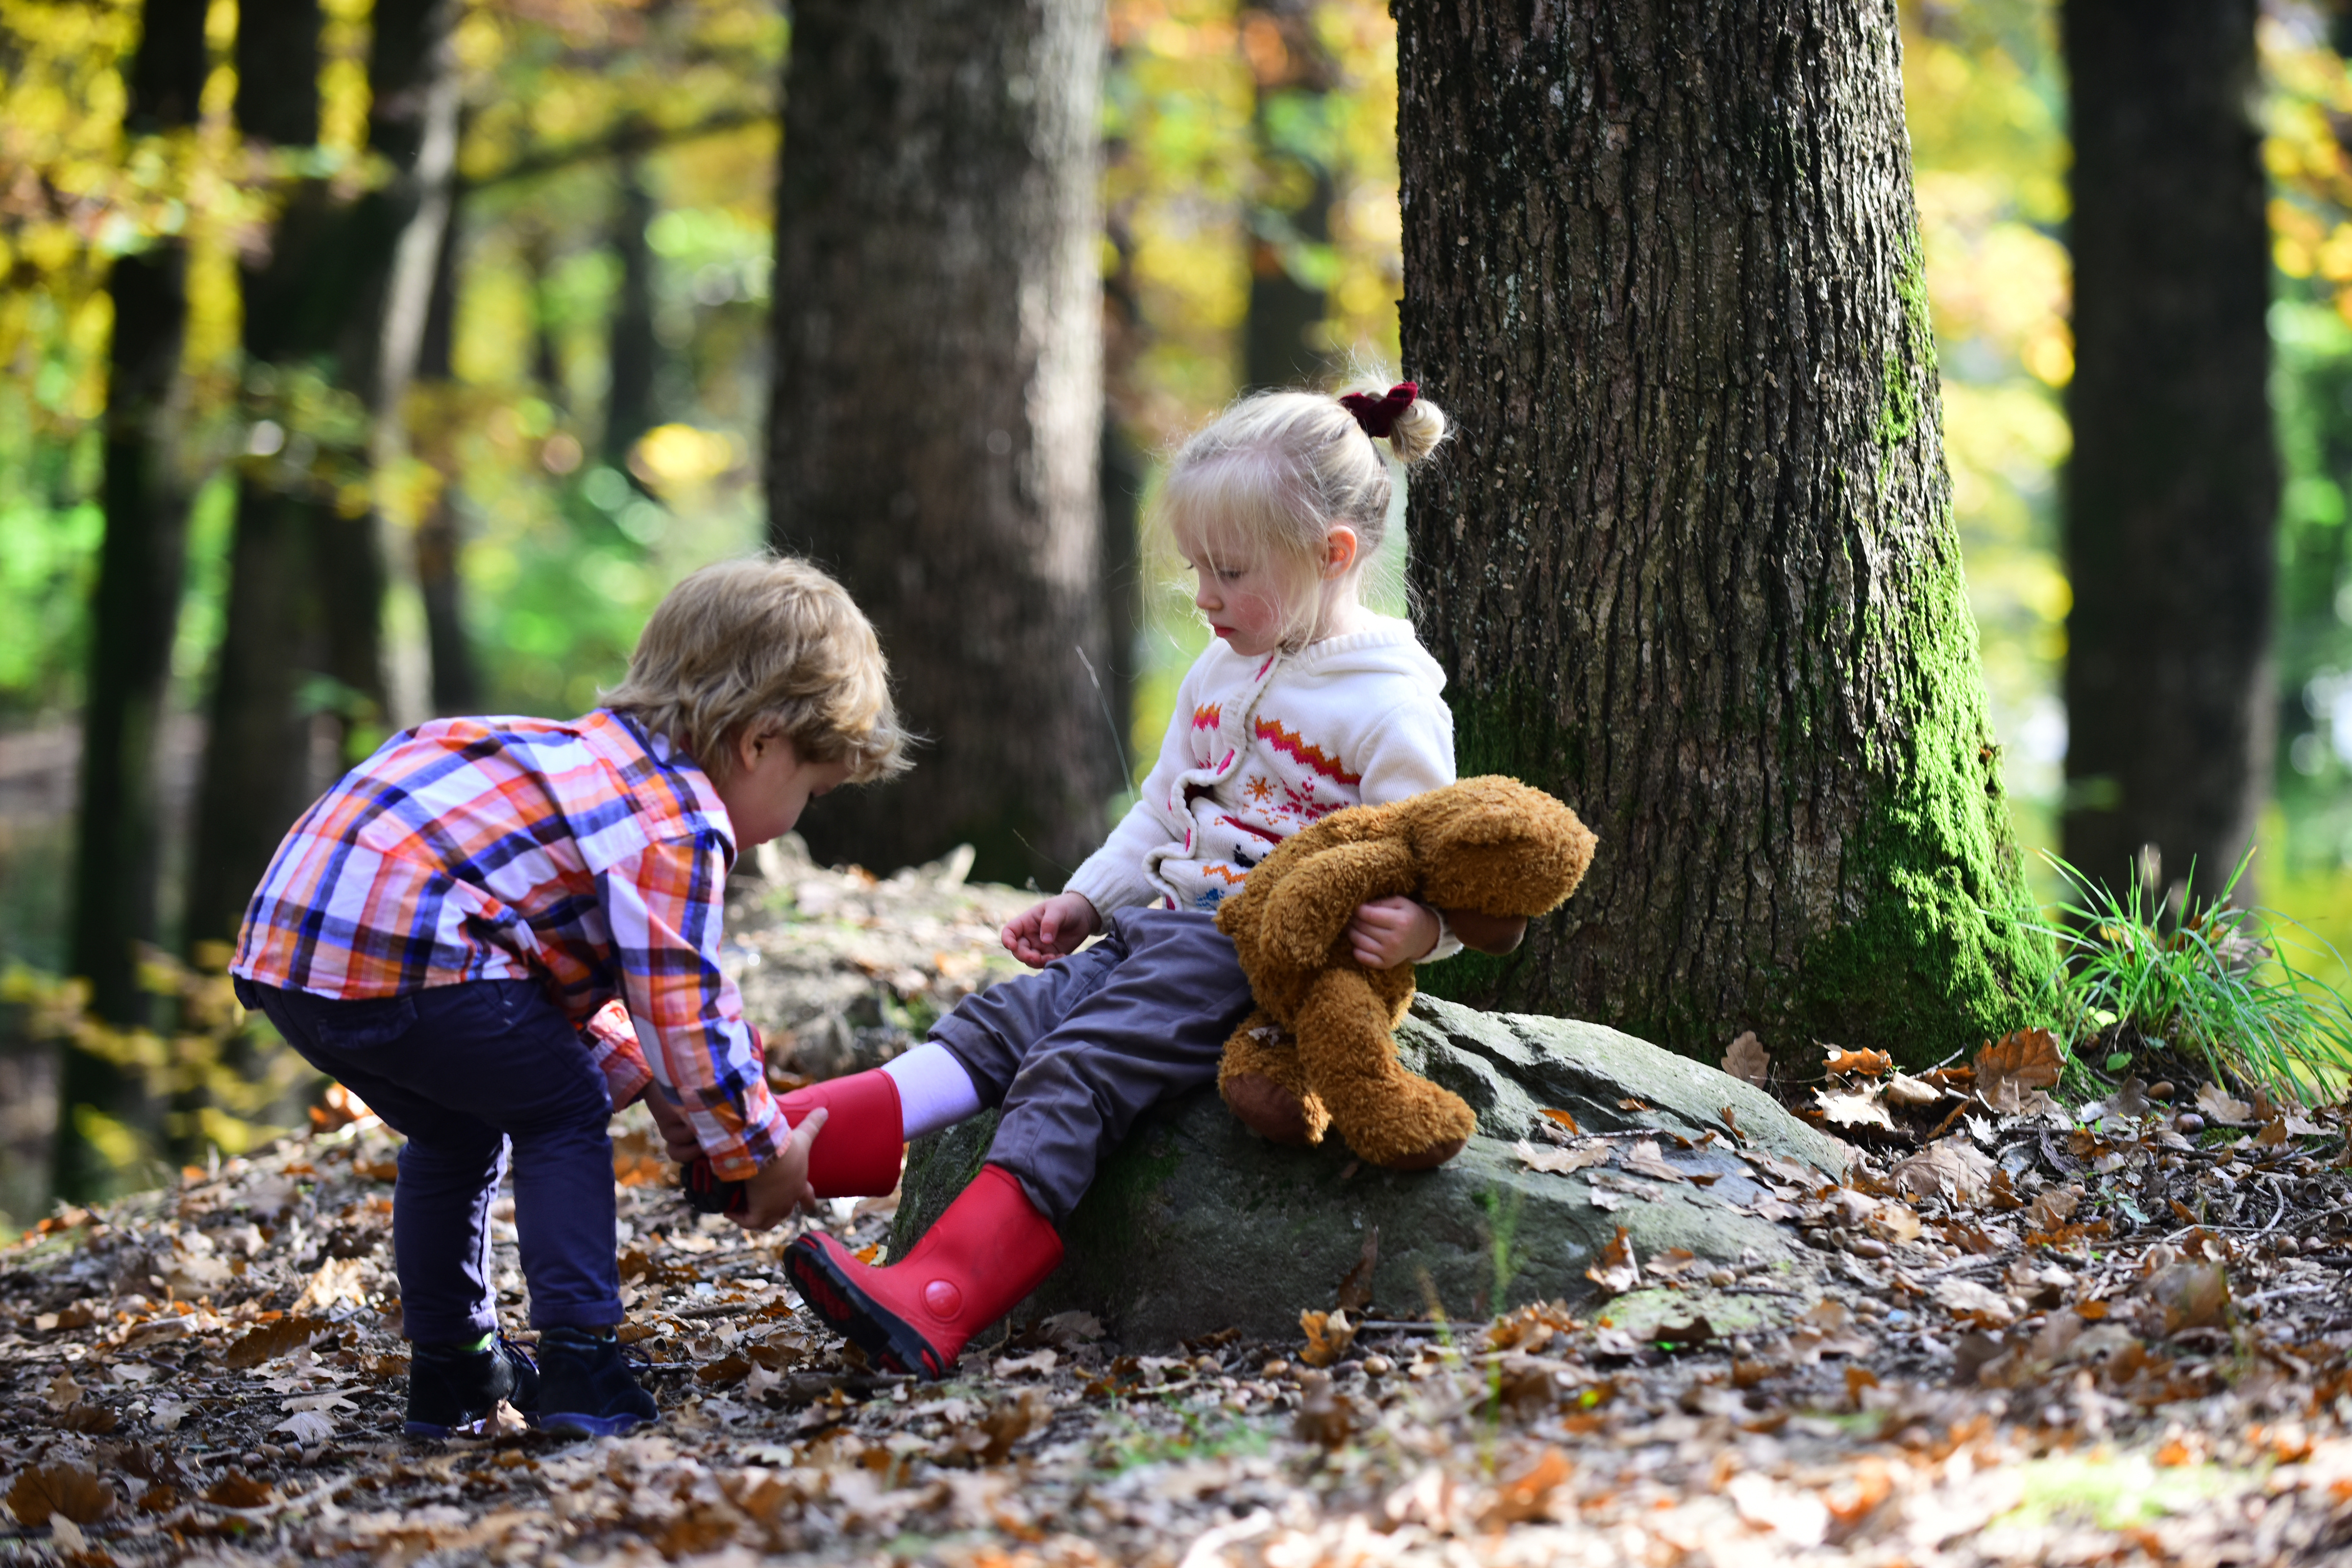 Raising Kind and caring children